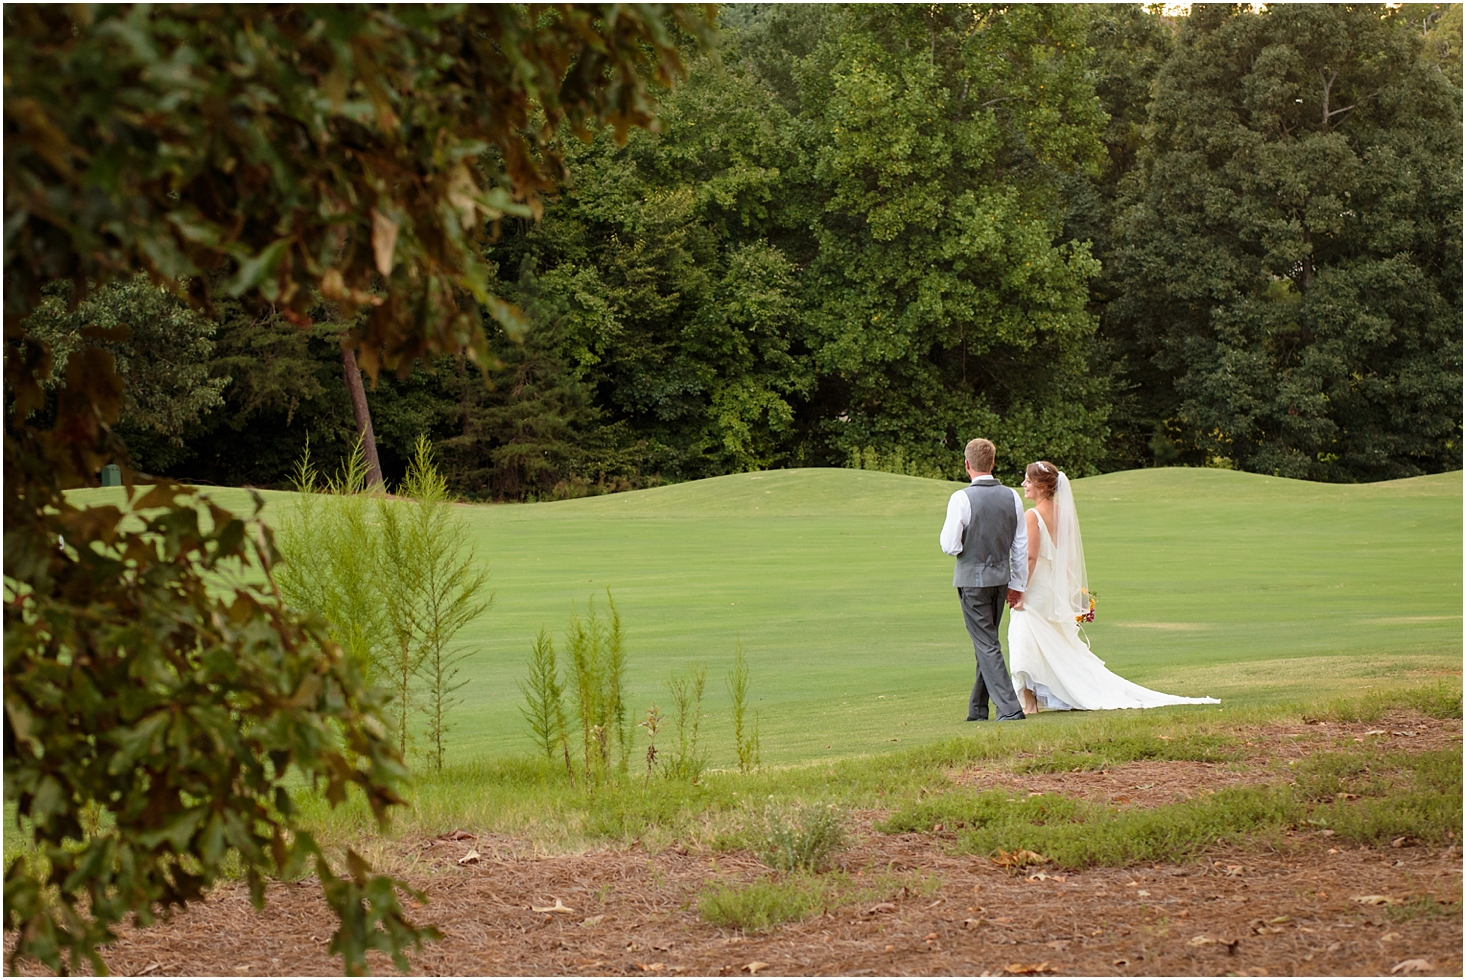 greenville-outdoor-wedding-embassy-suites-verdae-52_blog.jpg